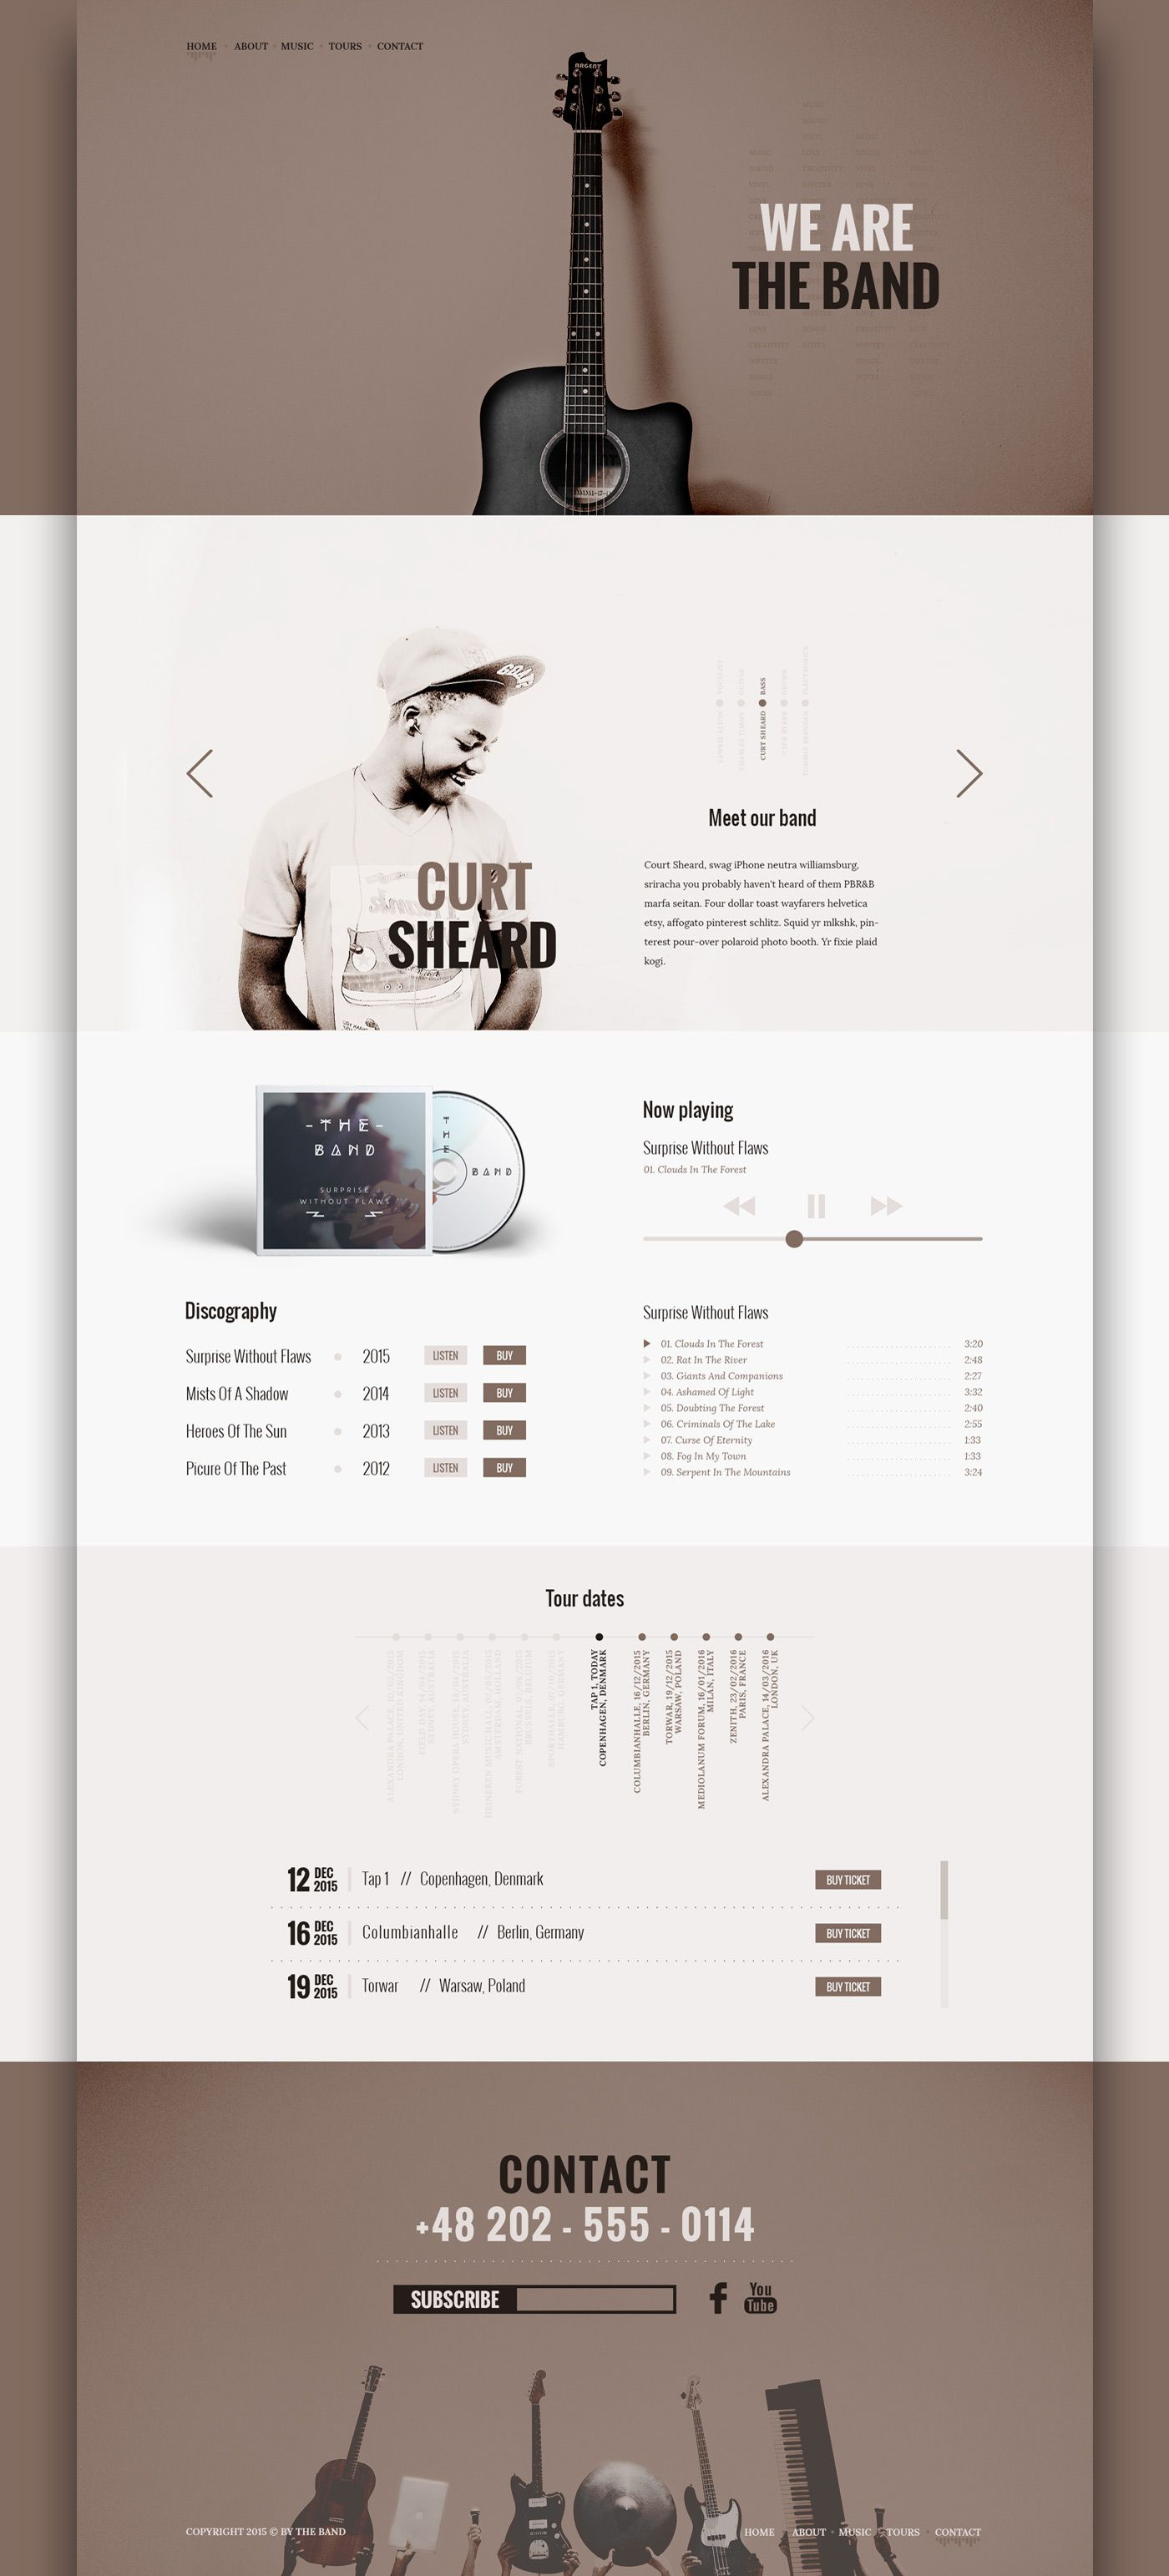 The band free psd template for music related websites on behance the band free psd template for music related websites on behance pronofoot35fo Choice Image